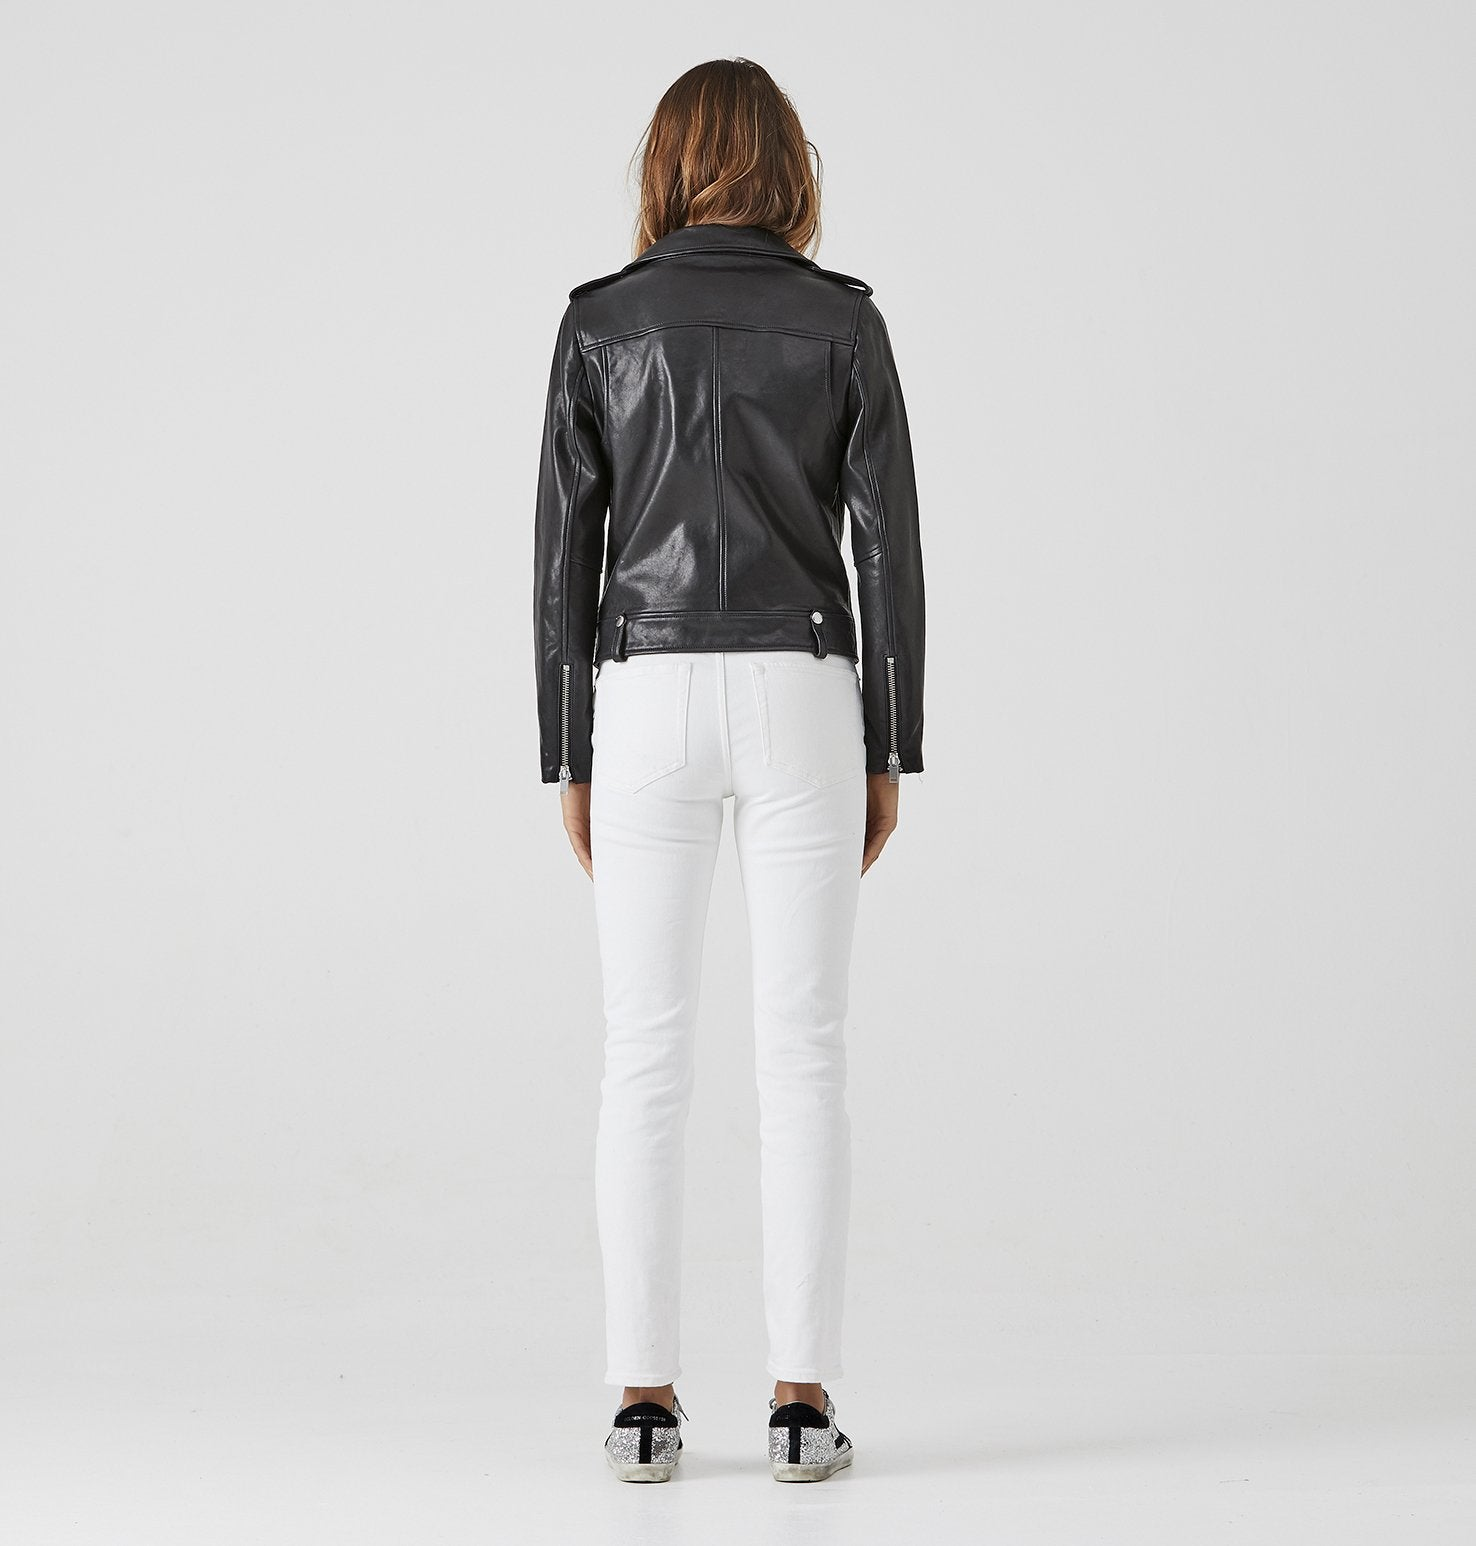 Sustainable Vegetable Tanned Leather Jacket Black With Silver Hardware